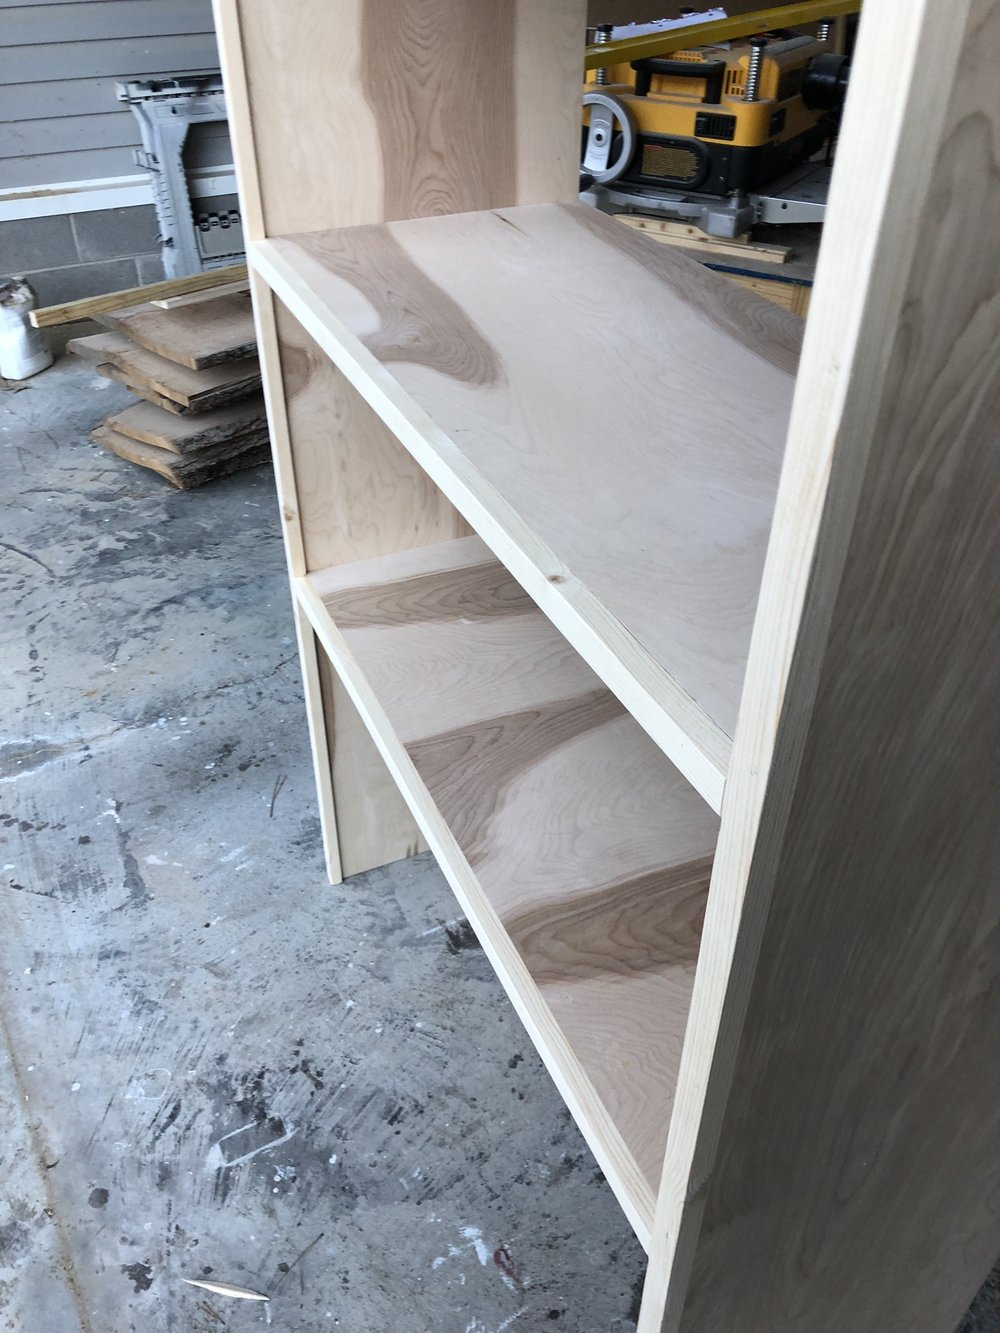 easy plywood shelves.jpeg